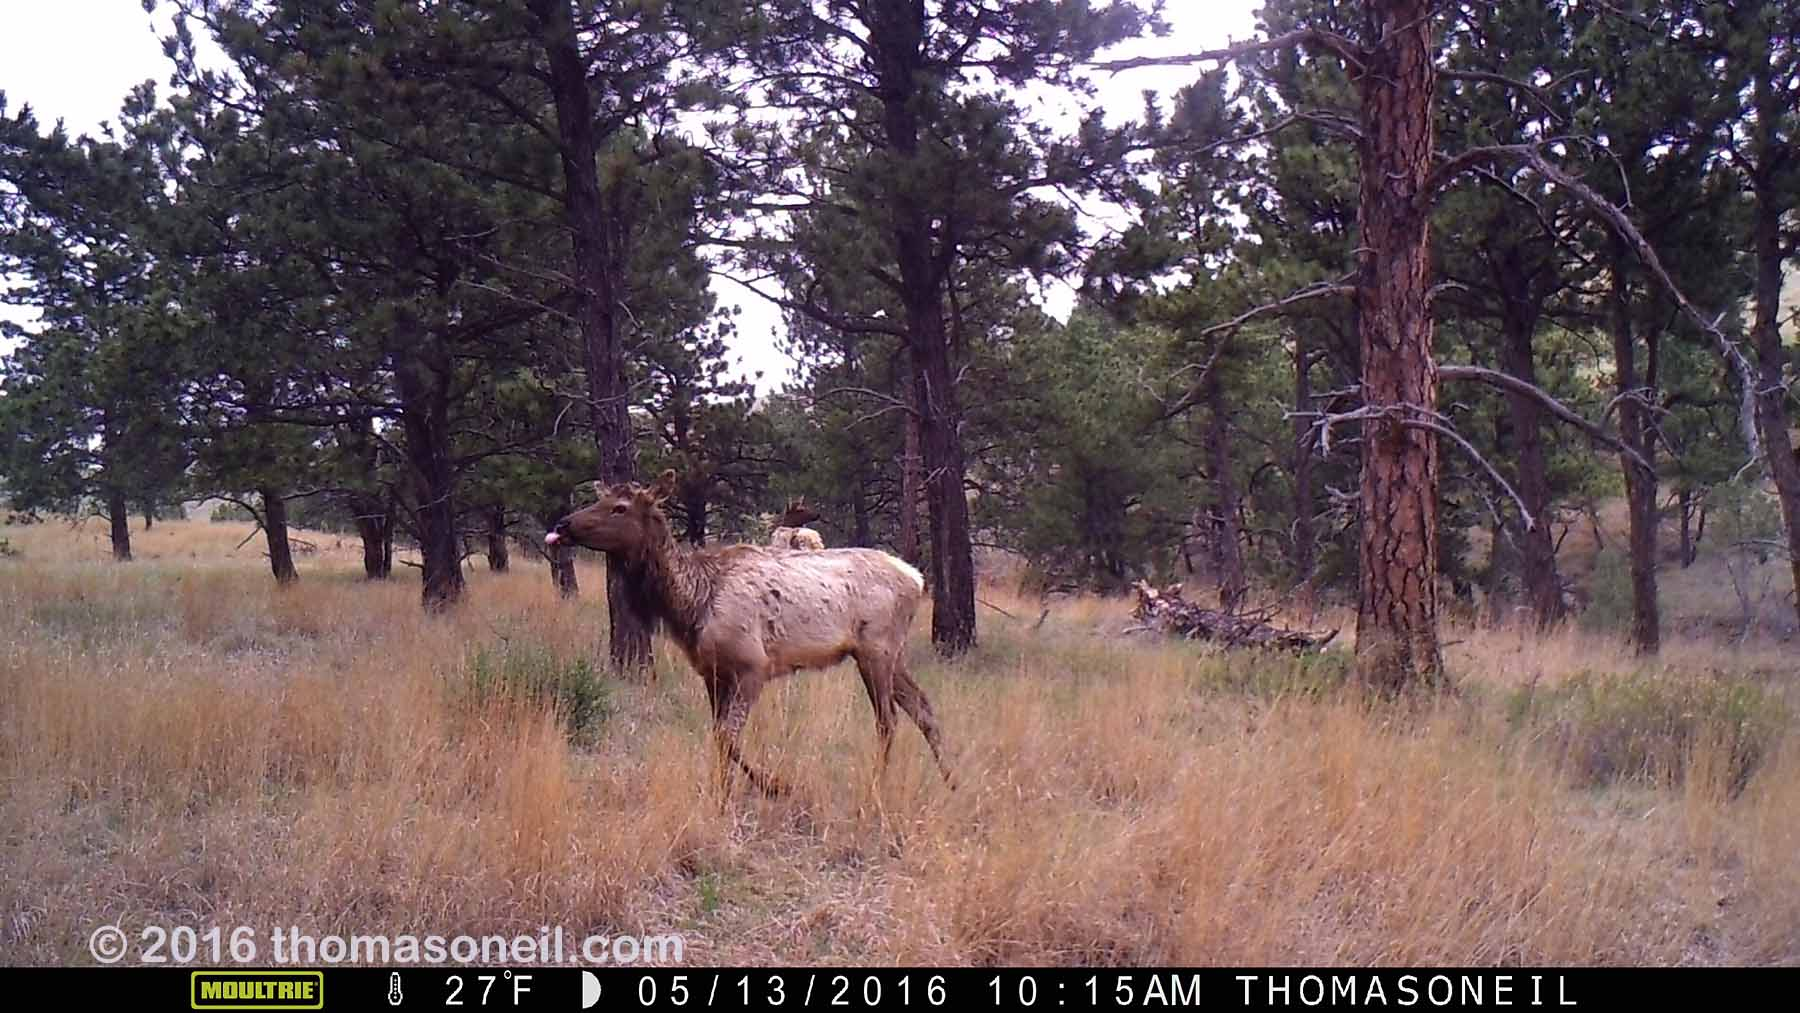 Elk on Moultrie trailcam, Wind Cave National Park, May 13, 2016.  Compare to following image on Primos trailcam.  Click for next photo.